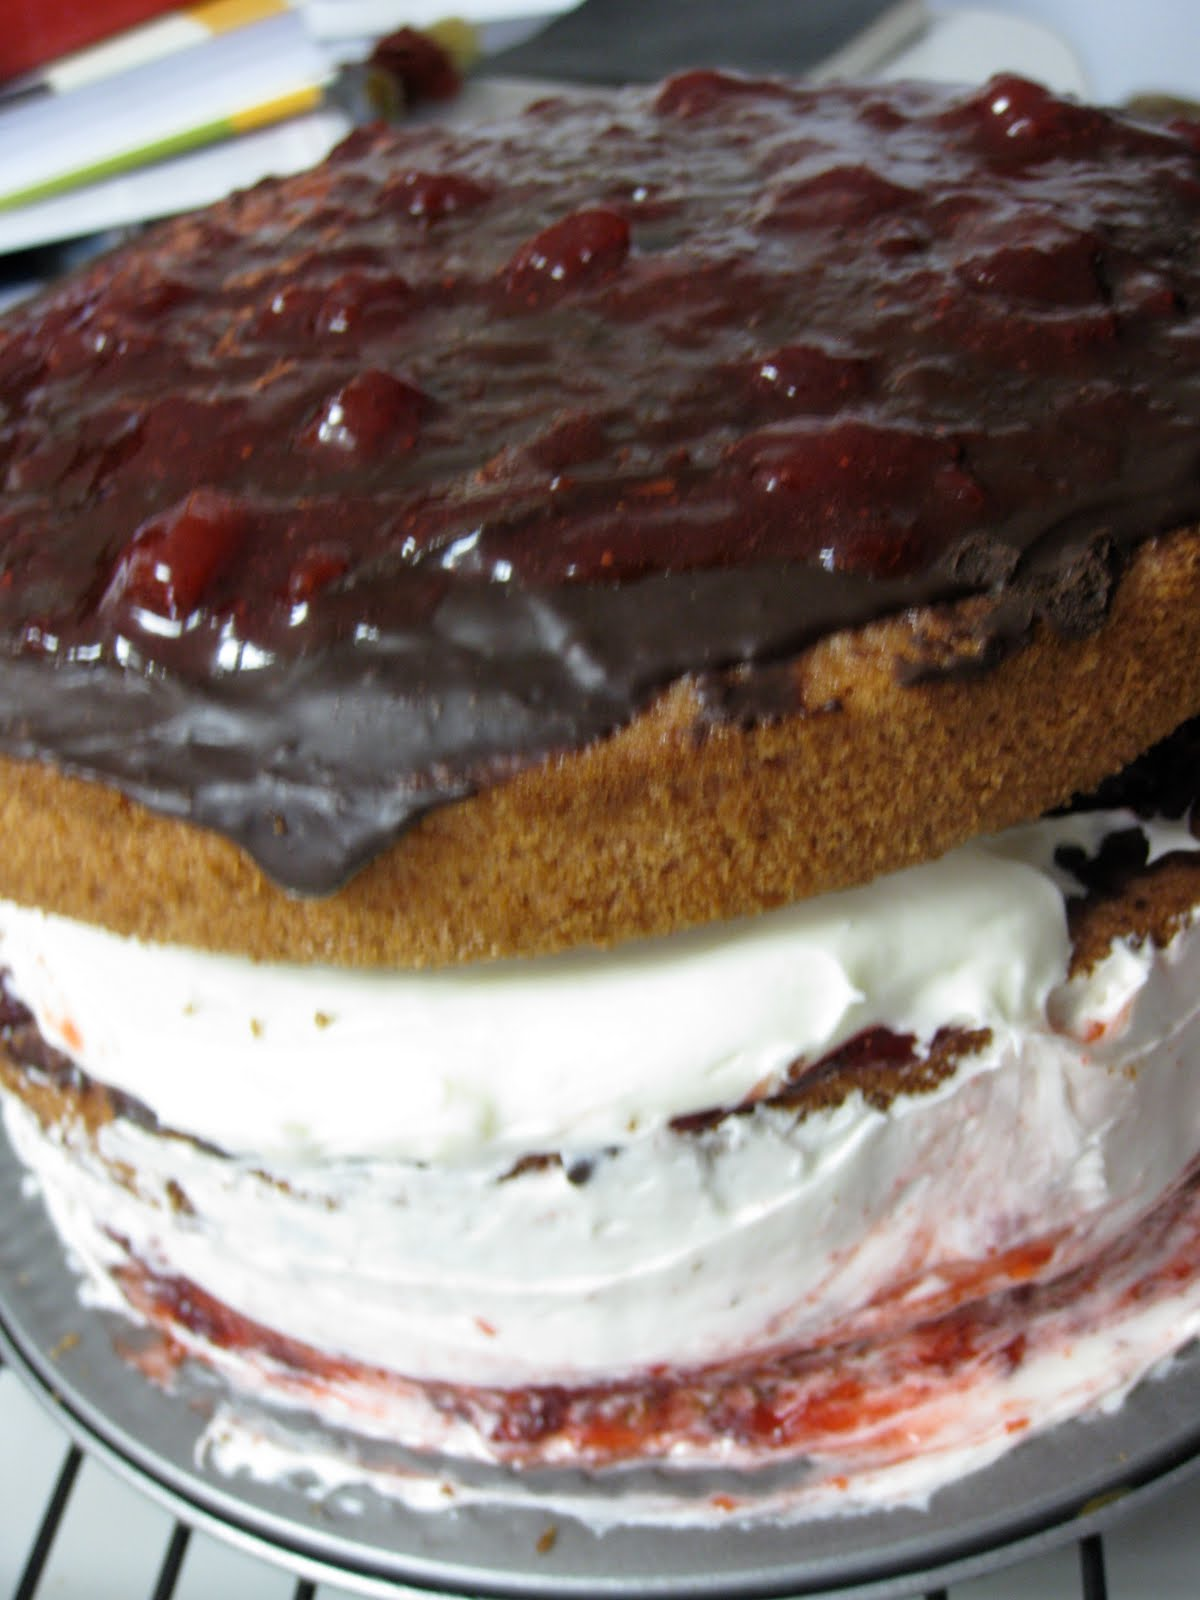 Can I Freeze Cake Layers Before Frosting